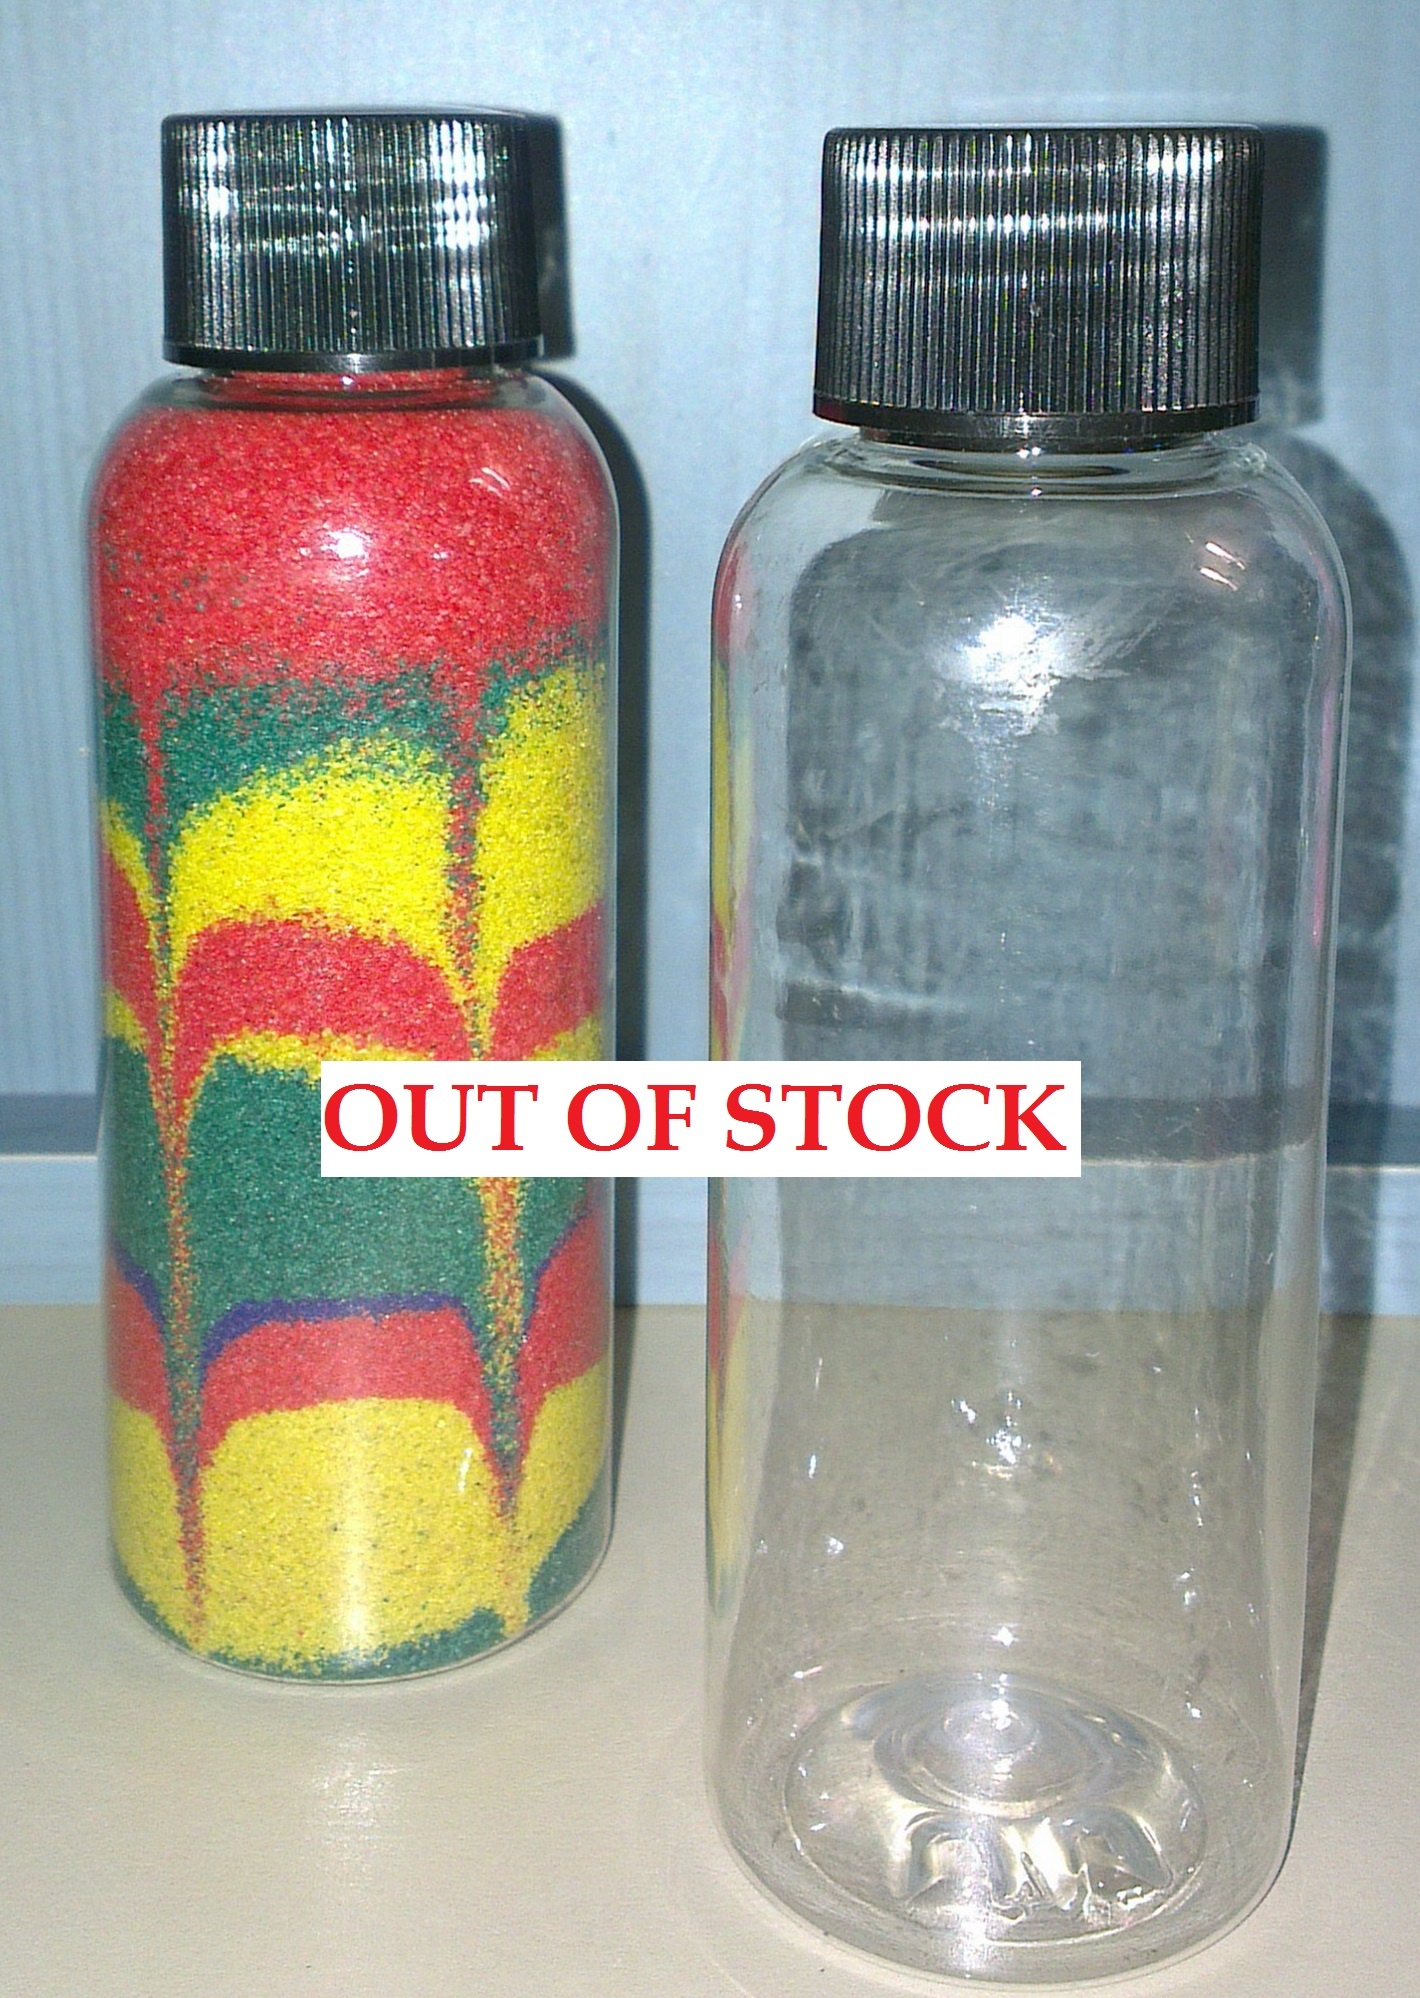 SMALL PLASTIC BOTTLE with BLACK CAP out of stock